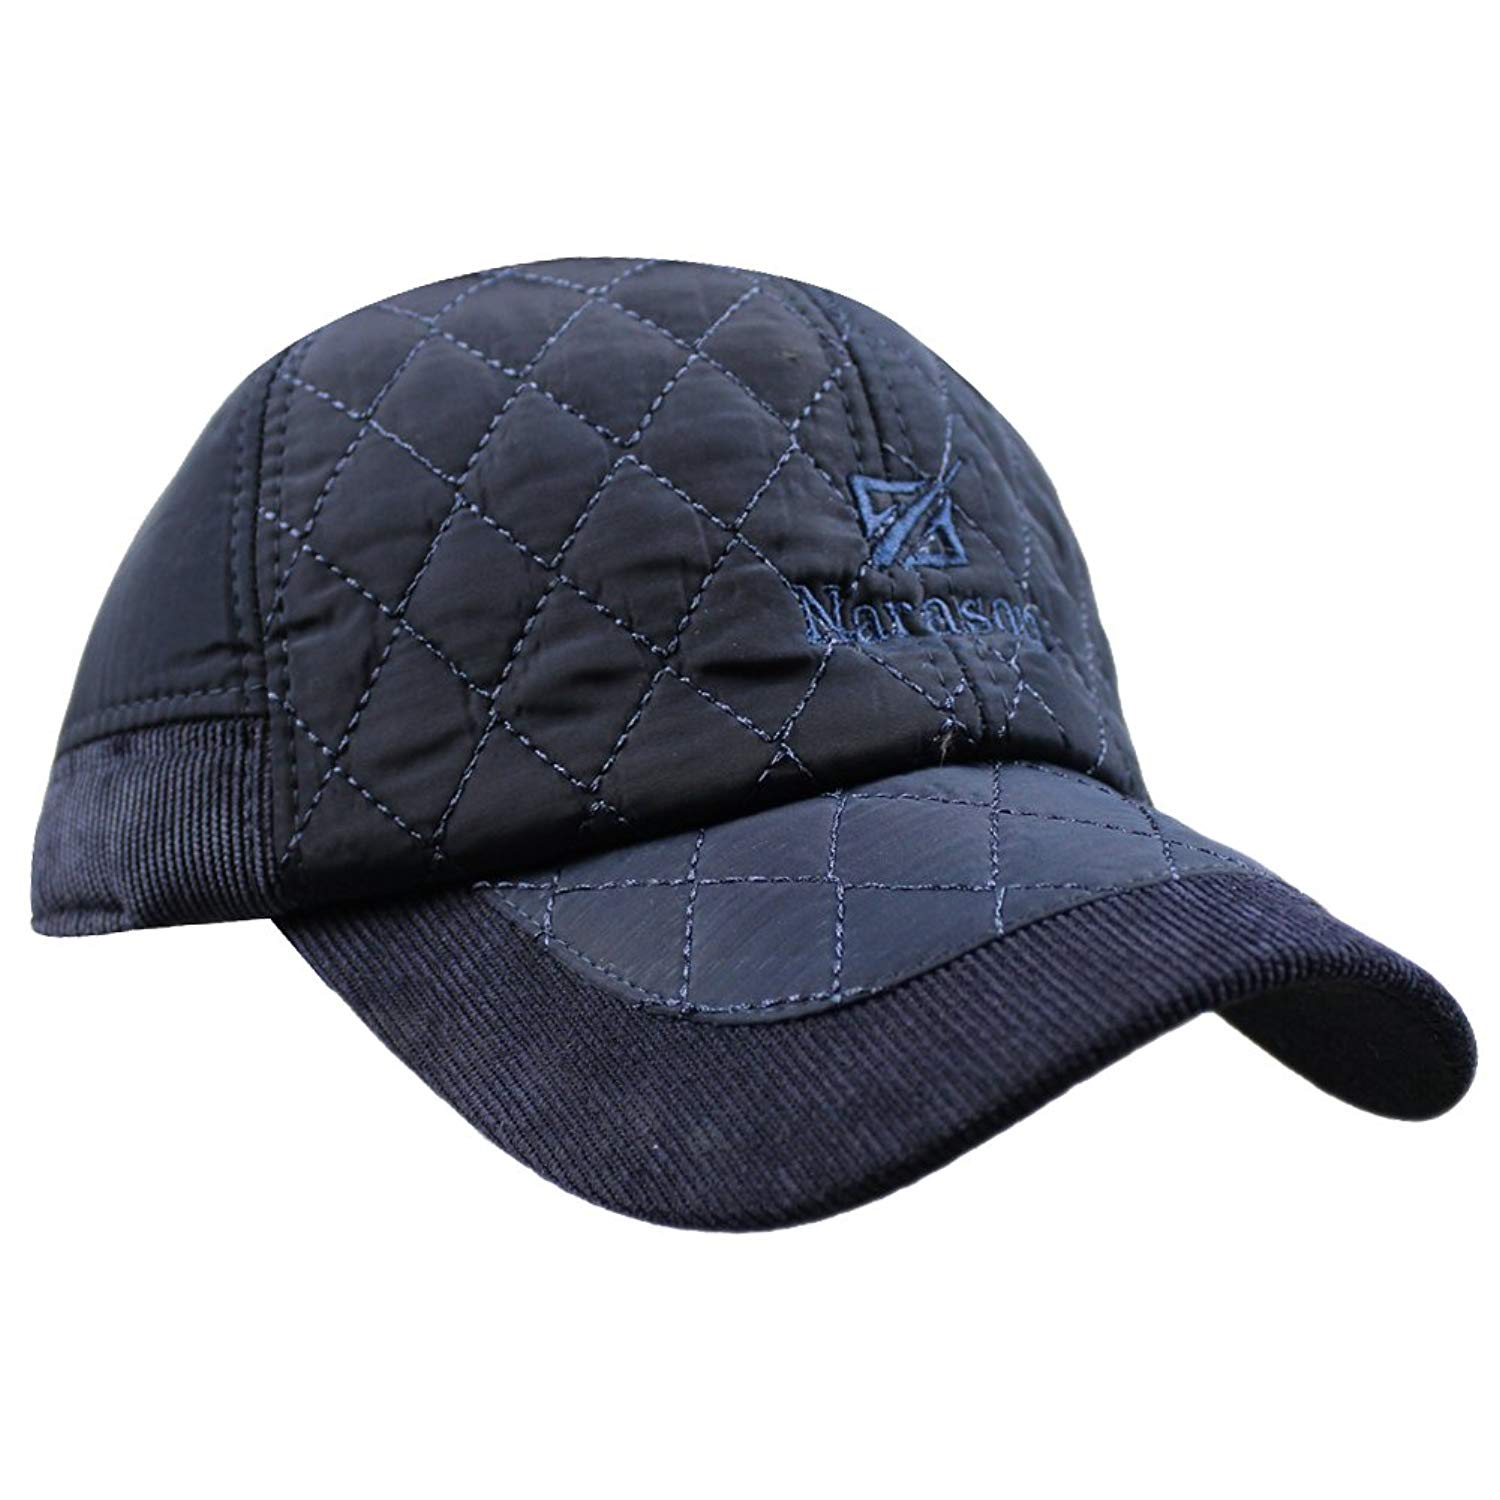 eYourlife2012 Men's Warm Cotton Padded Quilting Plaid Peaked Baseball Hat Cap with Ear Flap